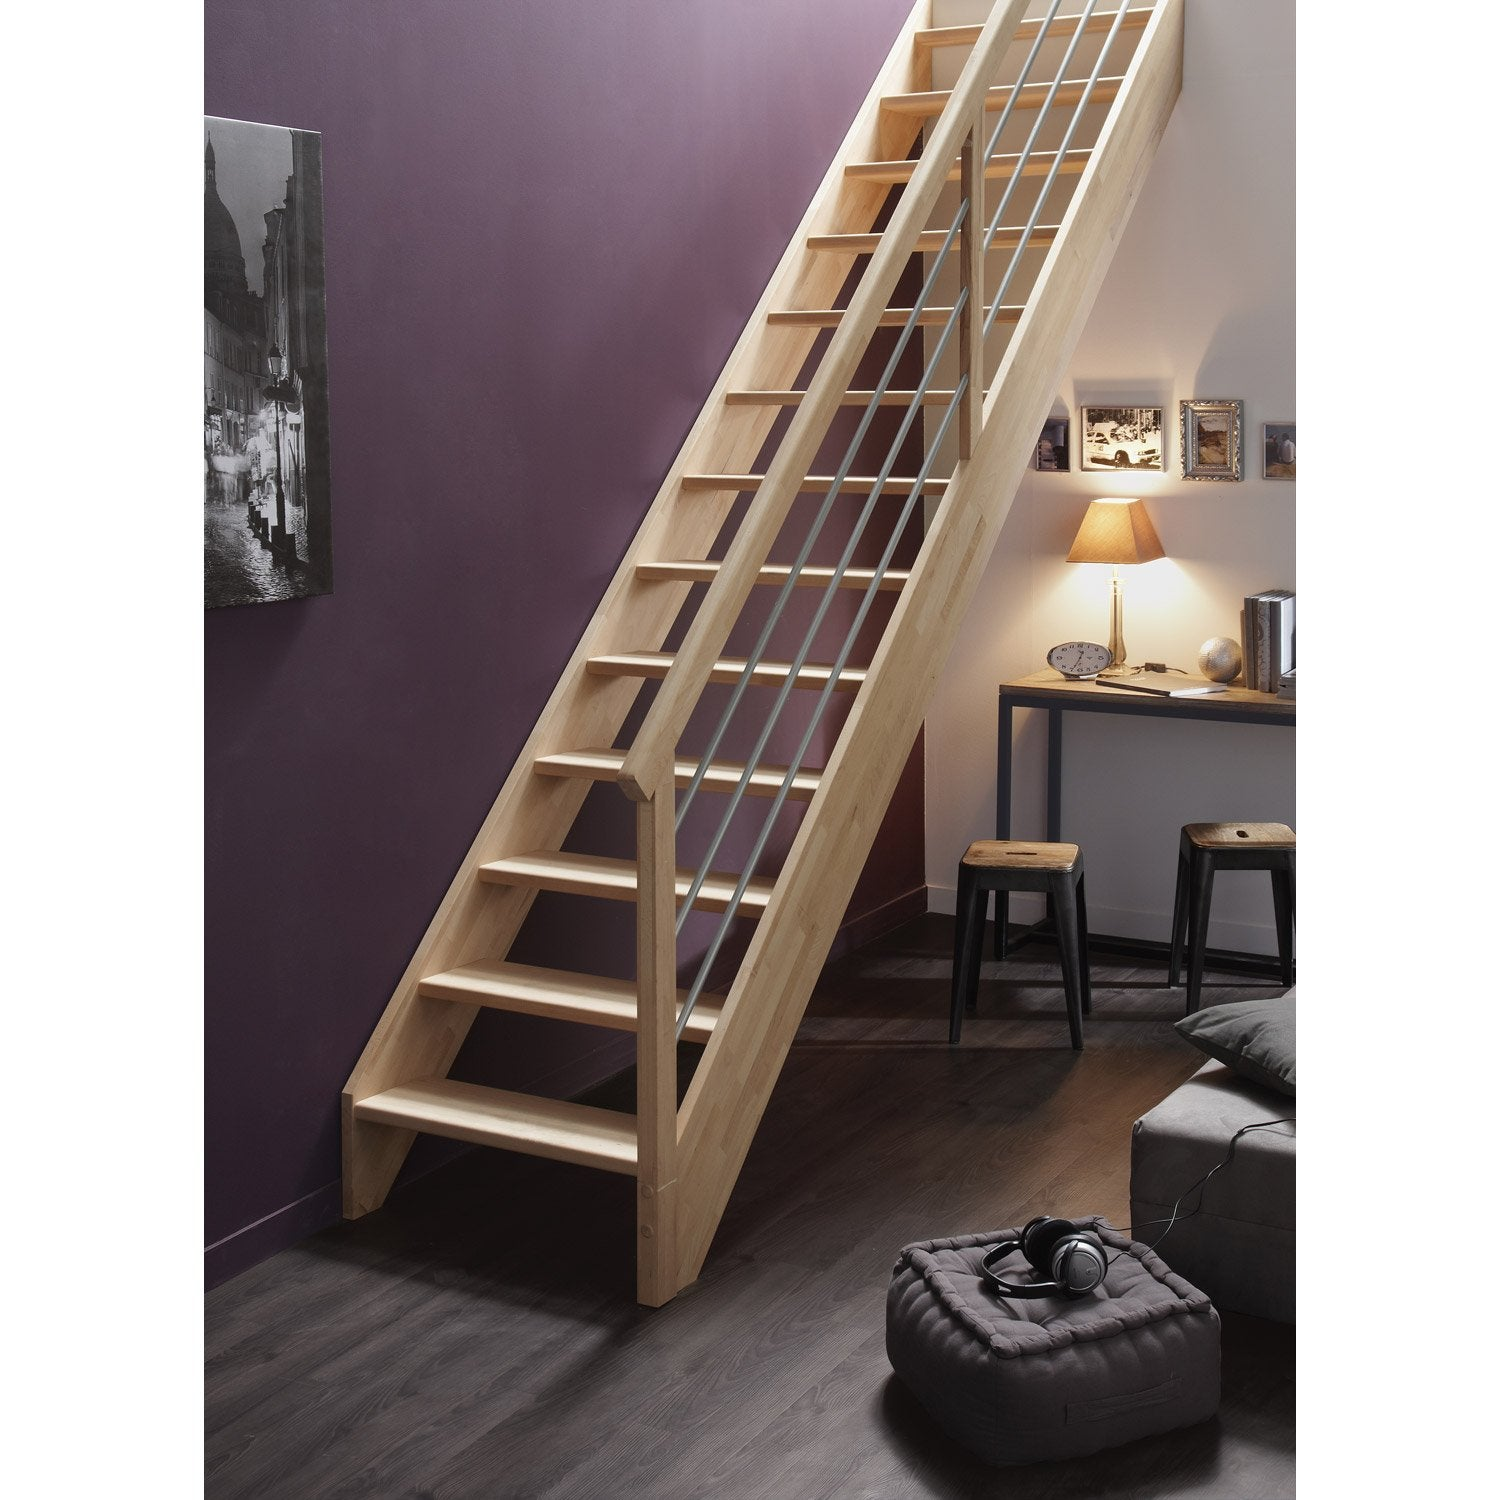 escalier droit urban tube structure bois marche bois leroy merlin. Black Bedroom Furniture Sets. Home Design Ideas